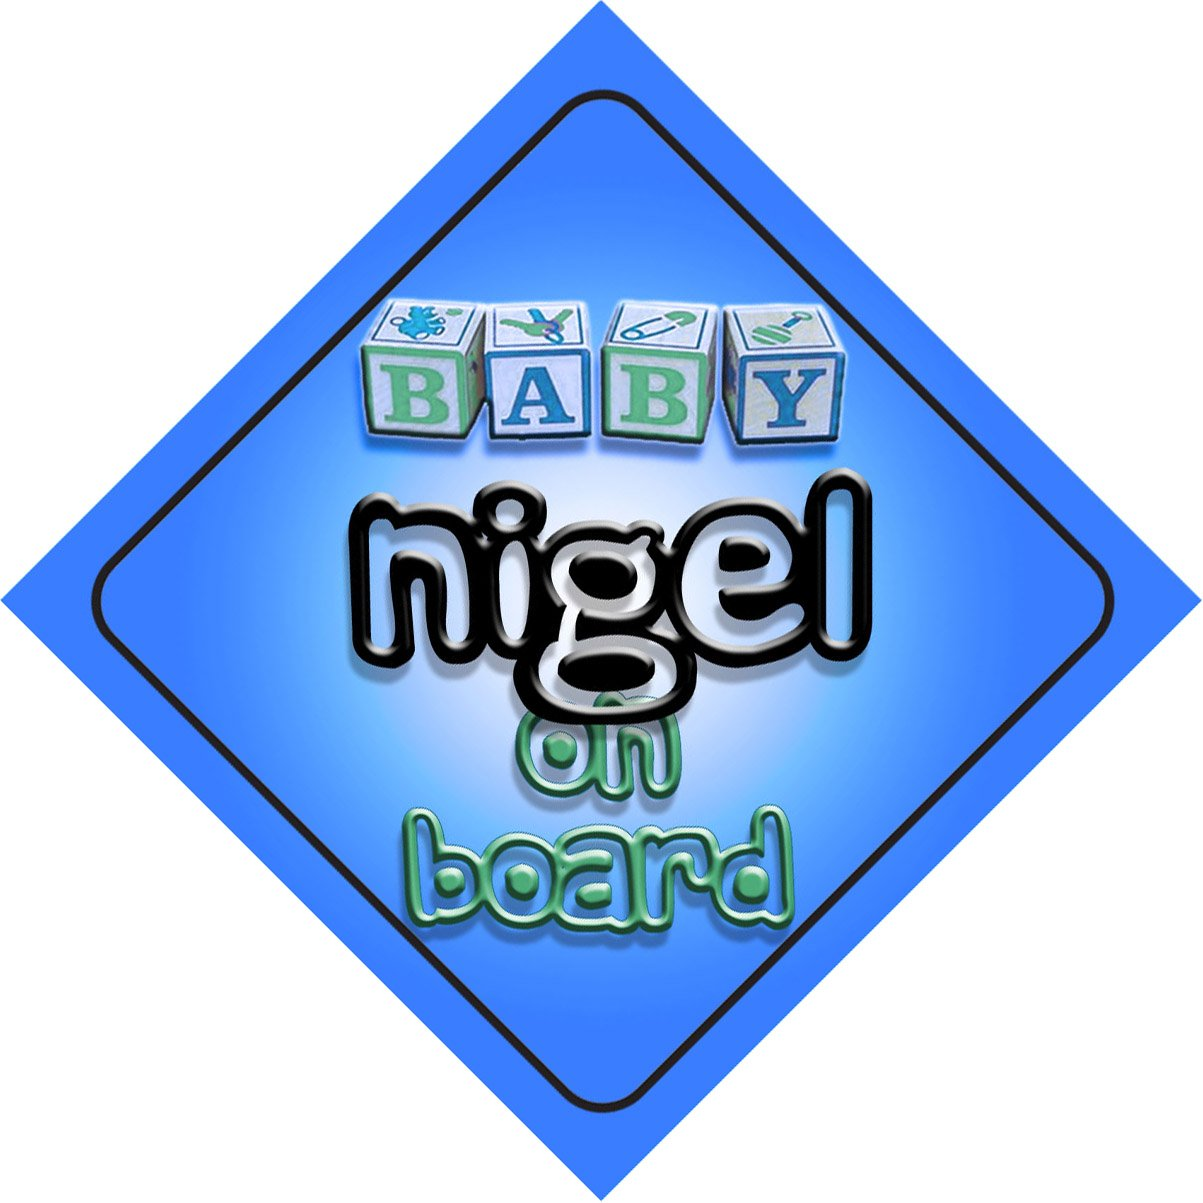 newborn baby present for new child Baby Boy Nigel on board novelty car sign gift